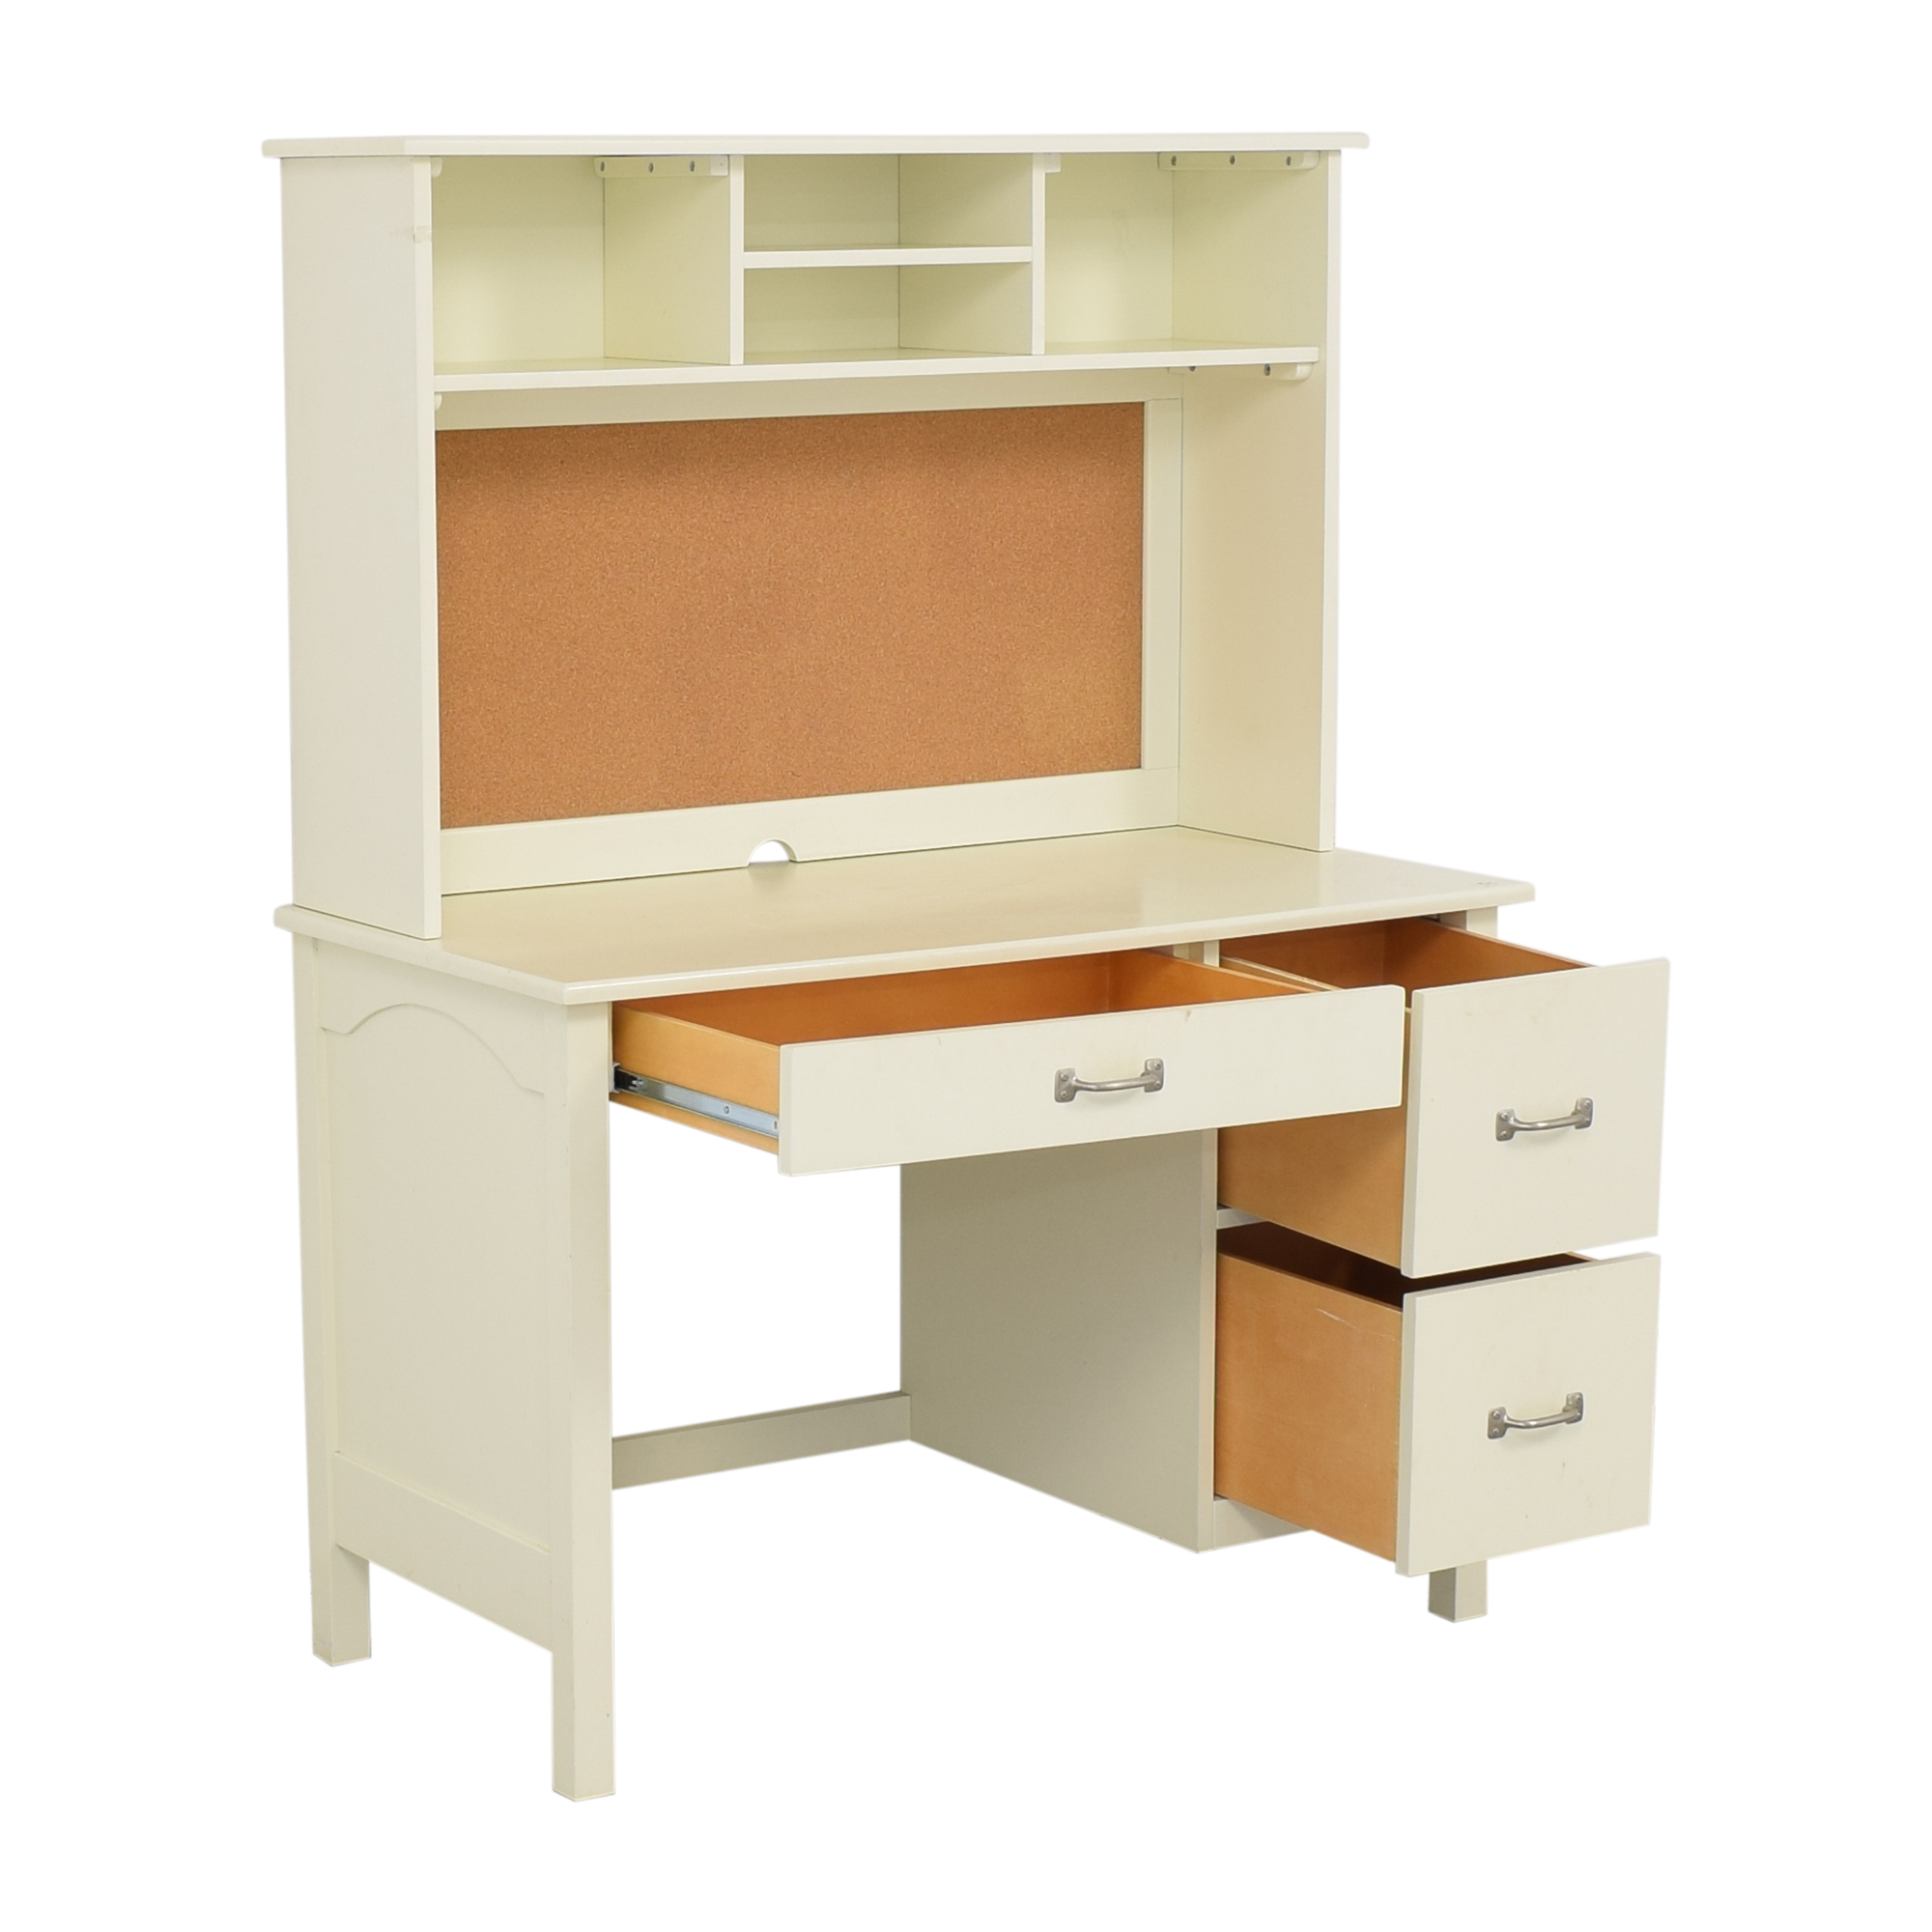 Pottery Barn Kids Kendall Desk with Hutch / Tables